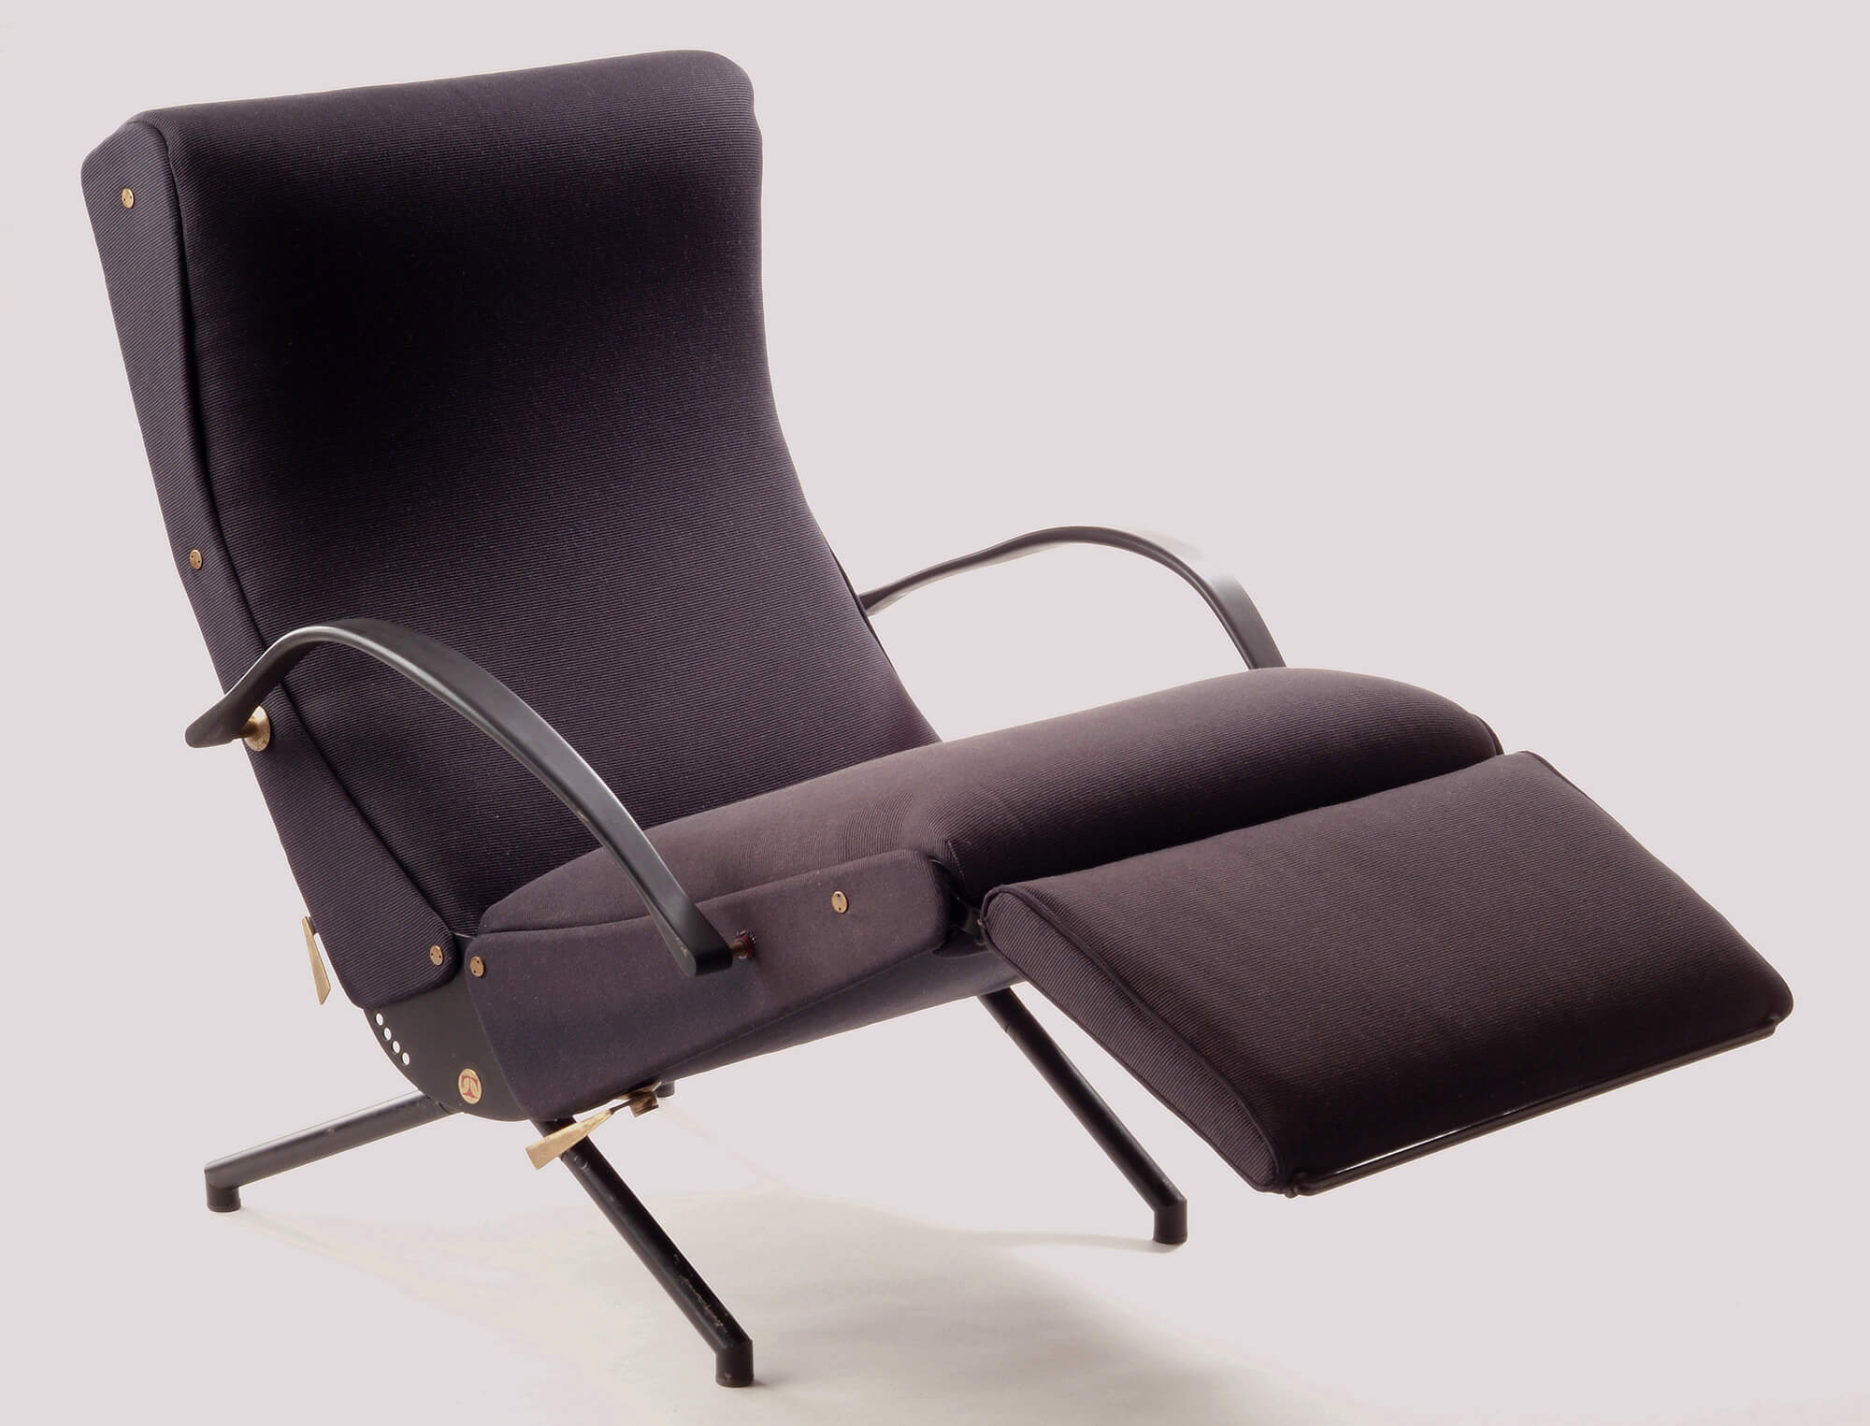 Dark Grey reclining lounge chair with a tall shaped back, square seat, and rectangular footrest. Angled legs and curved arms in black steel.